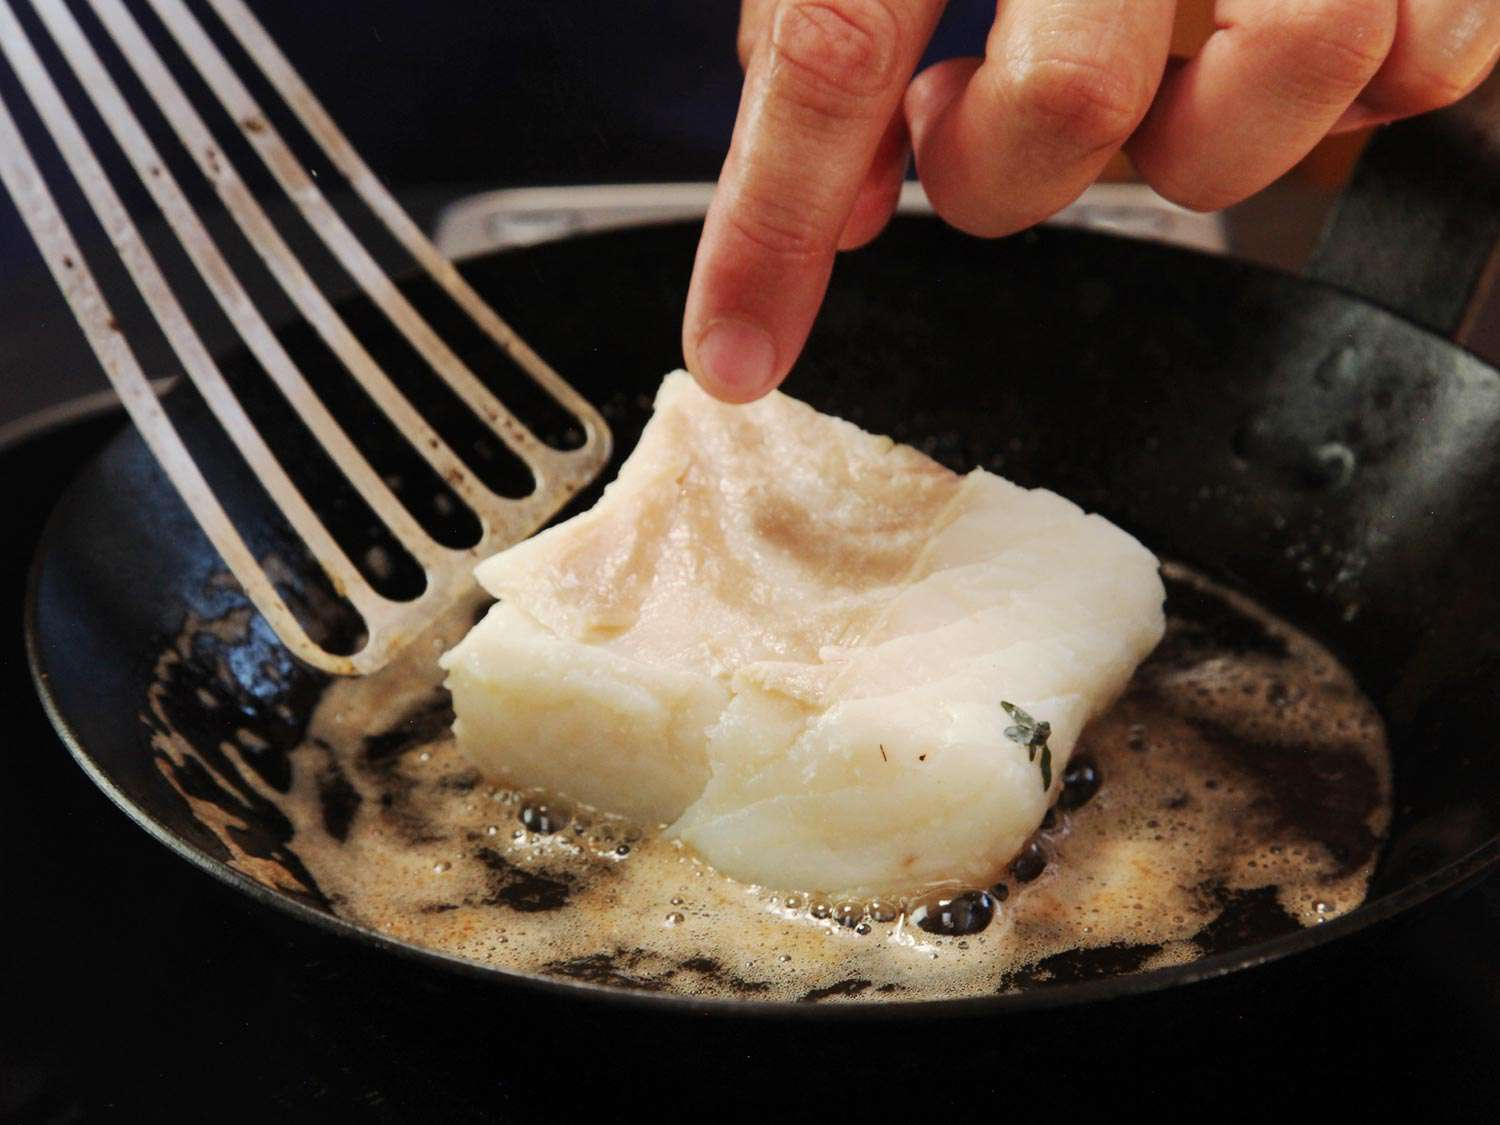 Searing halibut in a carbon steel pan with browned butter.